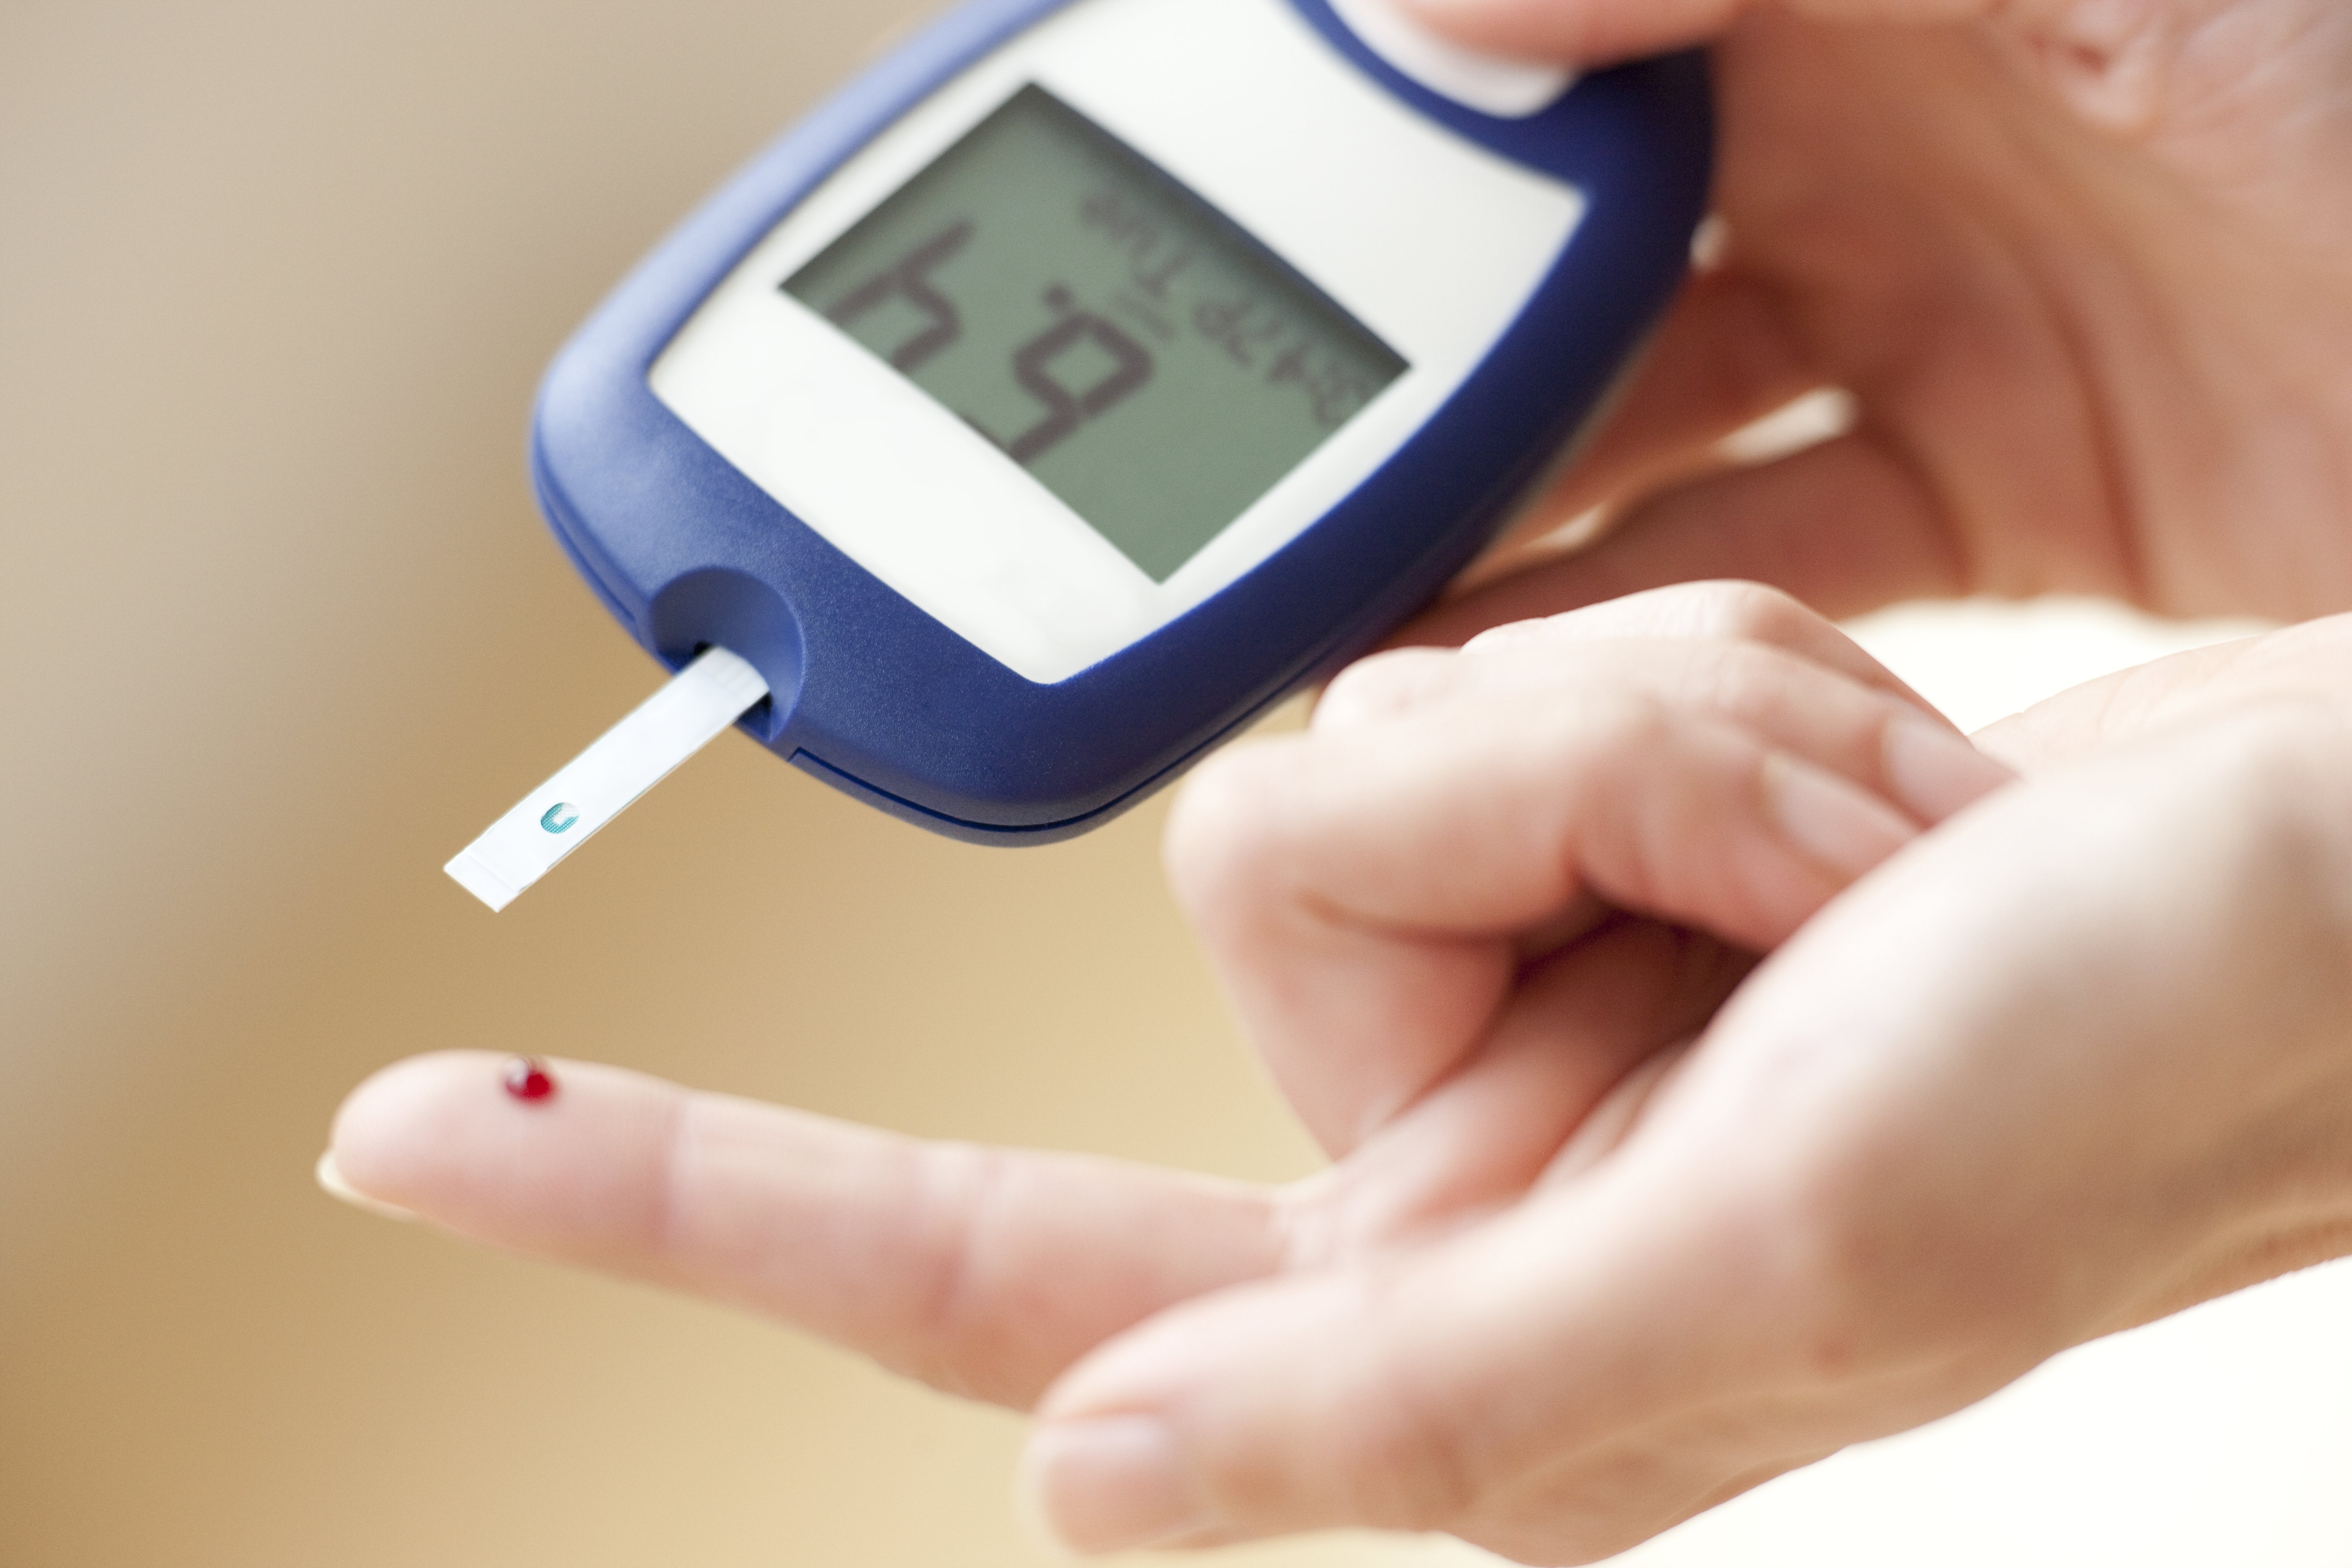 Researchers Identify Five Different Types of Diabetes, Not Just Type 1 and Type 2